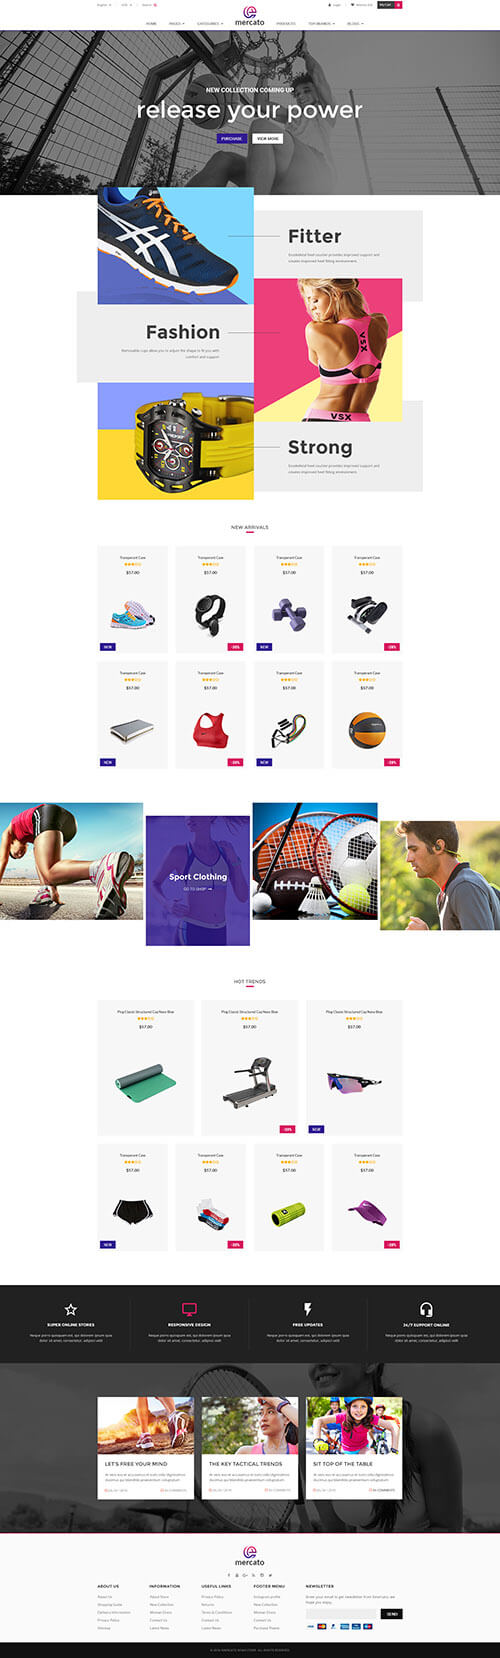 5 Best SHOPIFY Premium Themes Collection for SPORTS Store 2017 - Emercato- Multi-purpose Responsive Shopify Theme - Sectioned Drag & Drop Theme Builder